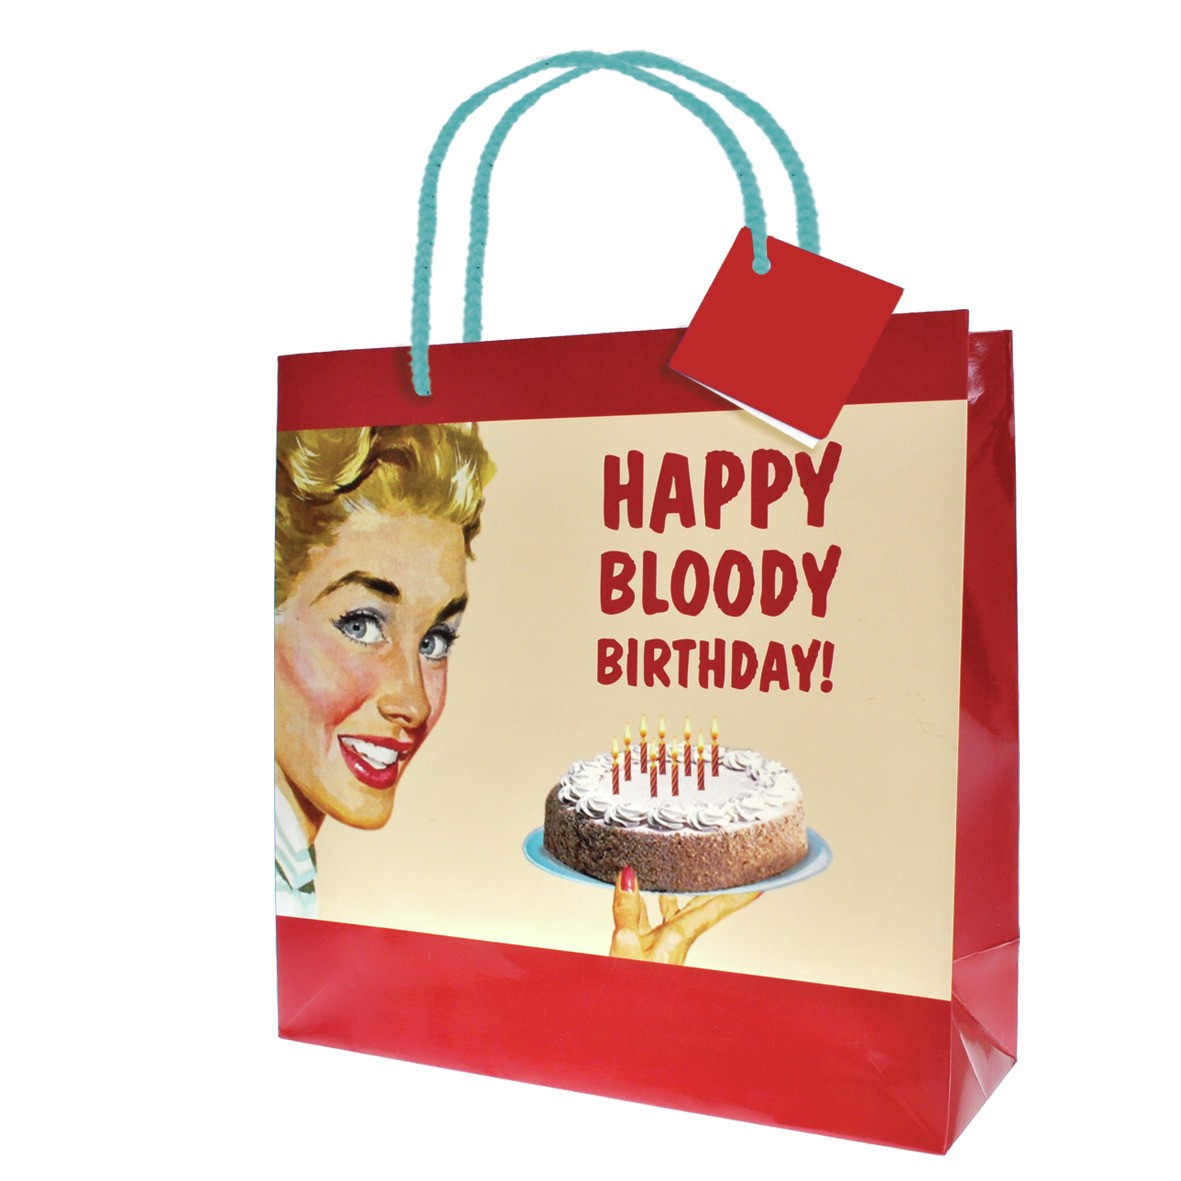 Details About NEW 32cm LARGE HAPPY BLOODY BIRTHDAY GIFT BAG PRESENT WRAPPING PAPER ADULT RETRO